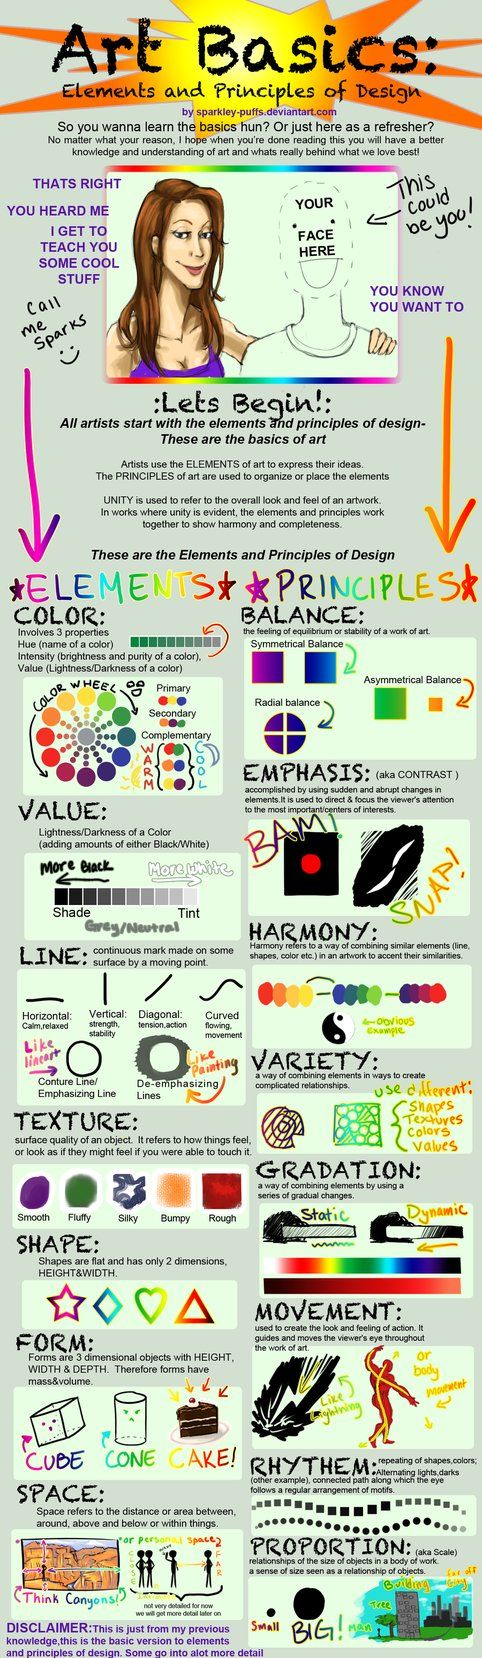 Elements+Principles of Design by *TheCuddlyKoalaWhale on deviantART